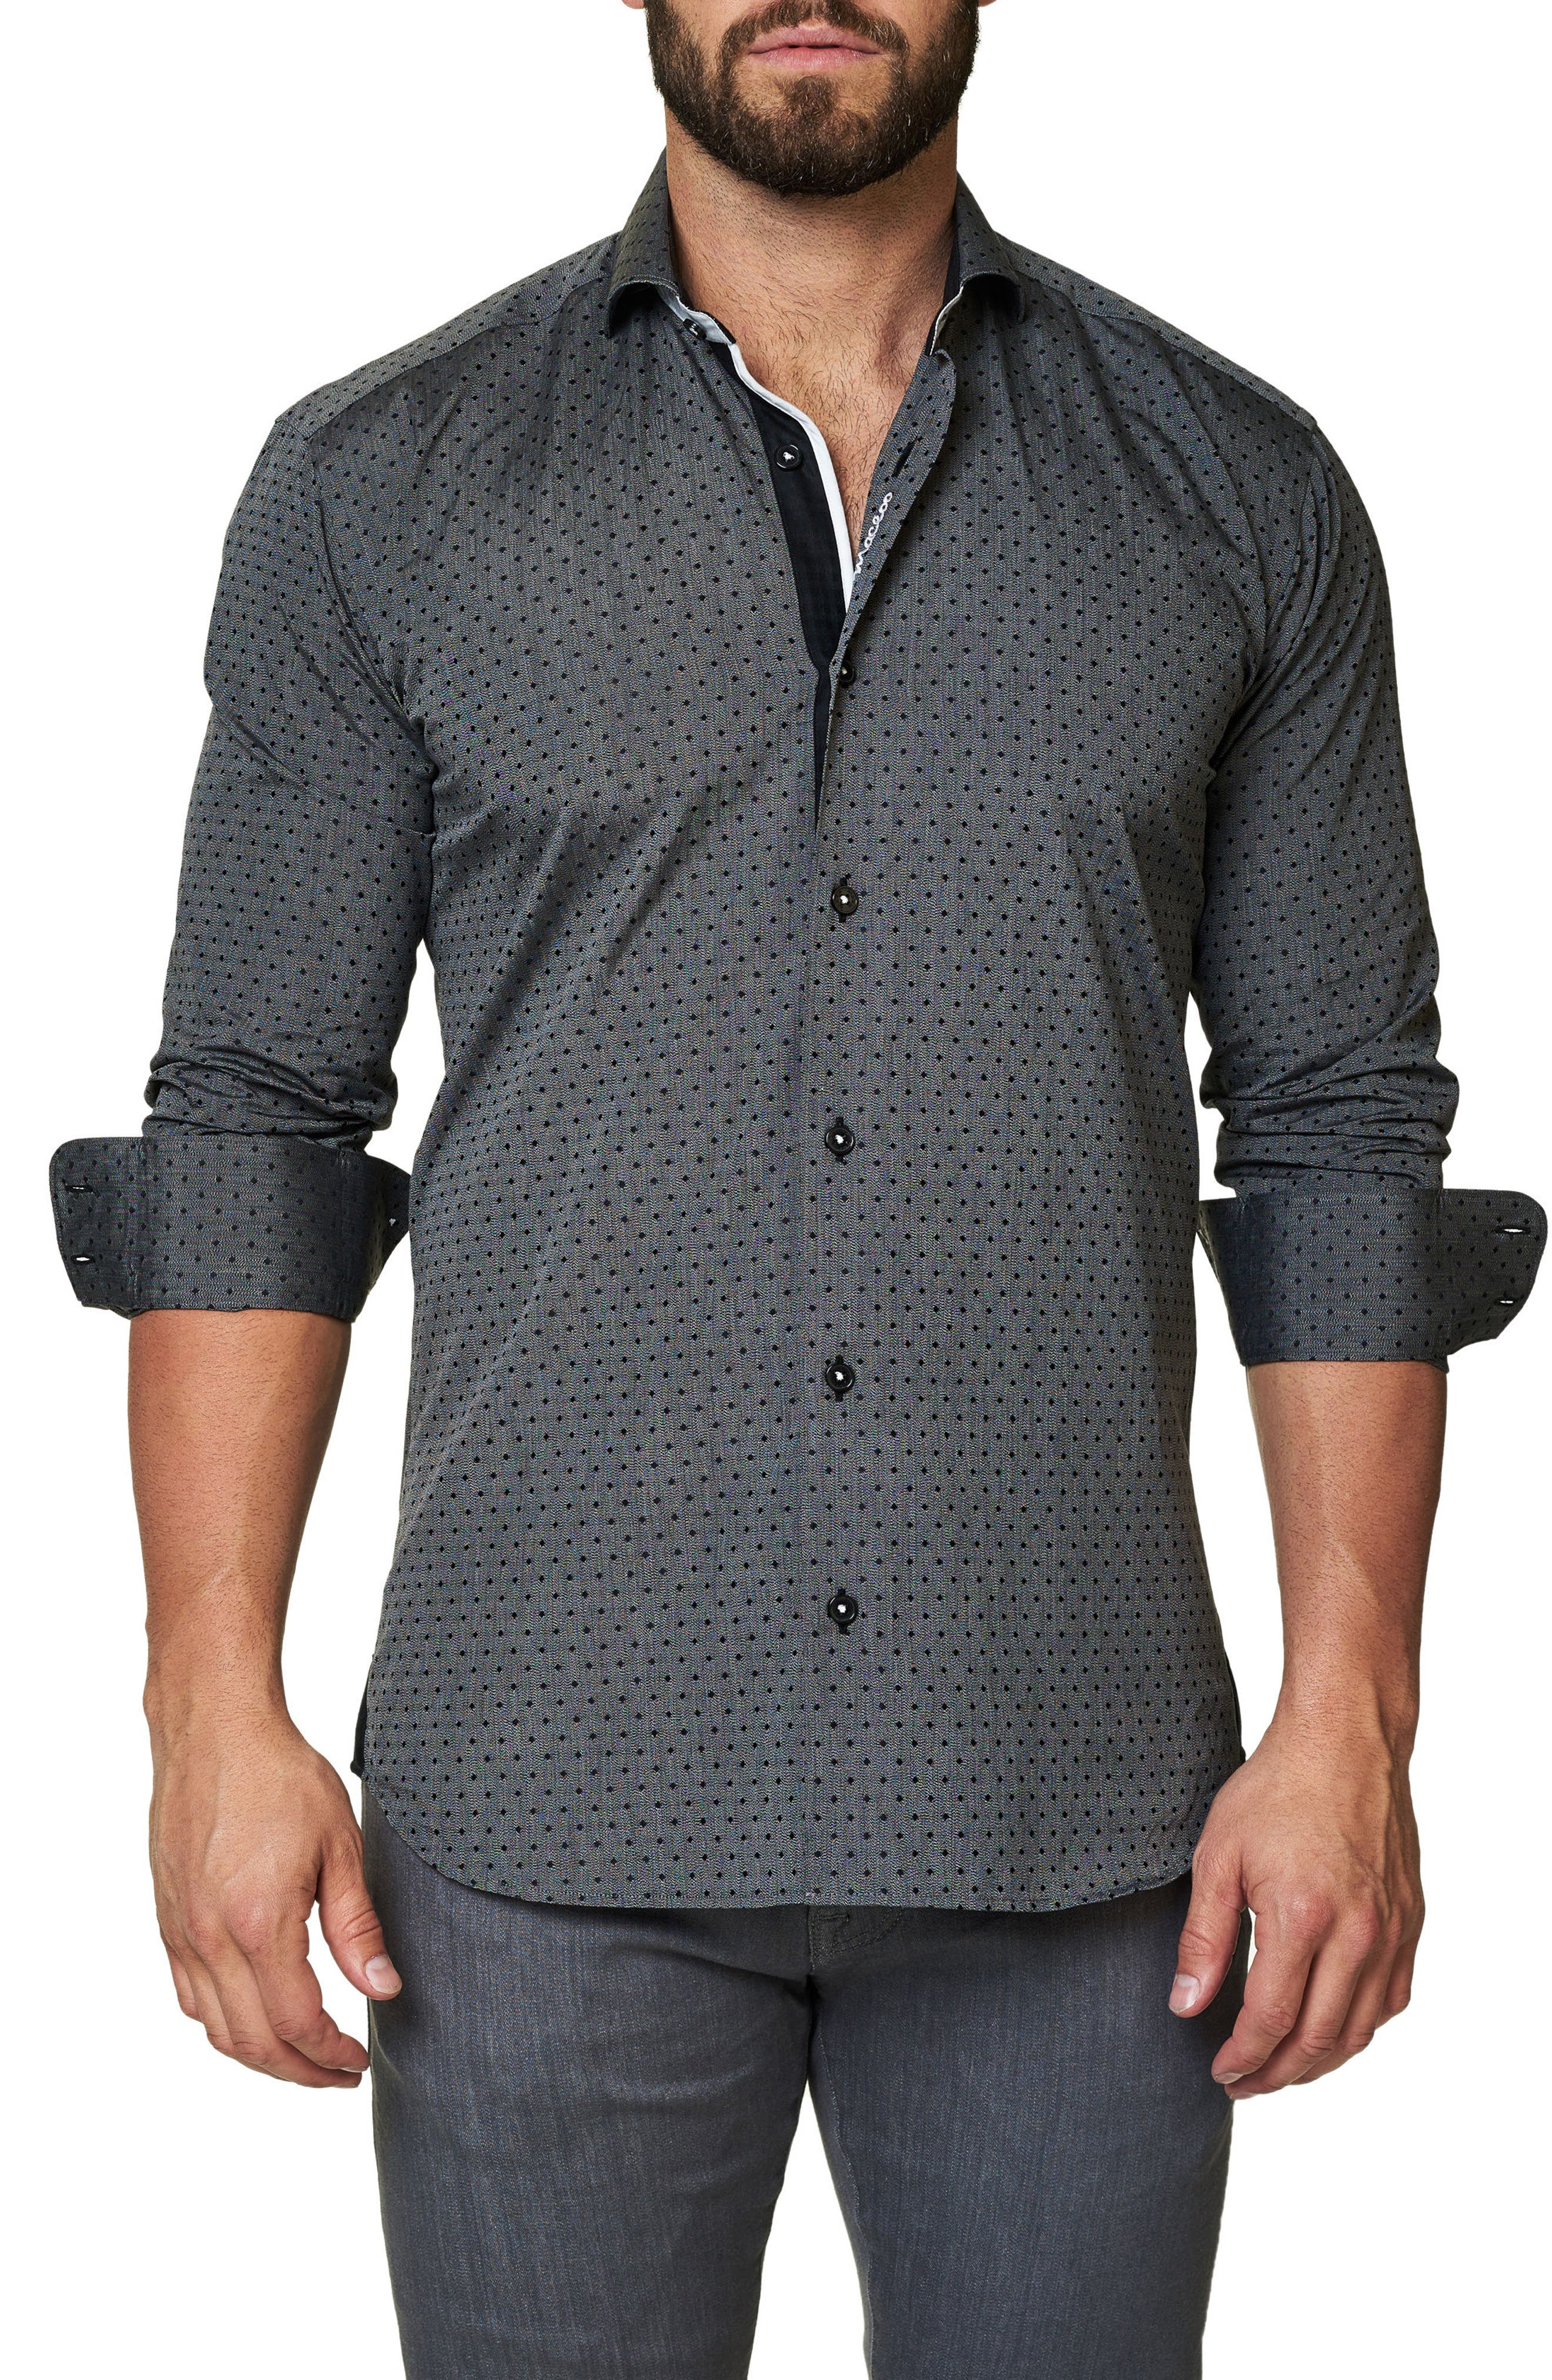 Alternate Image 1 Selected - Maceoo Trim Fit Dot Print Sport Shirt